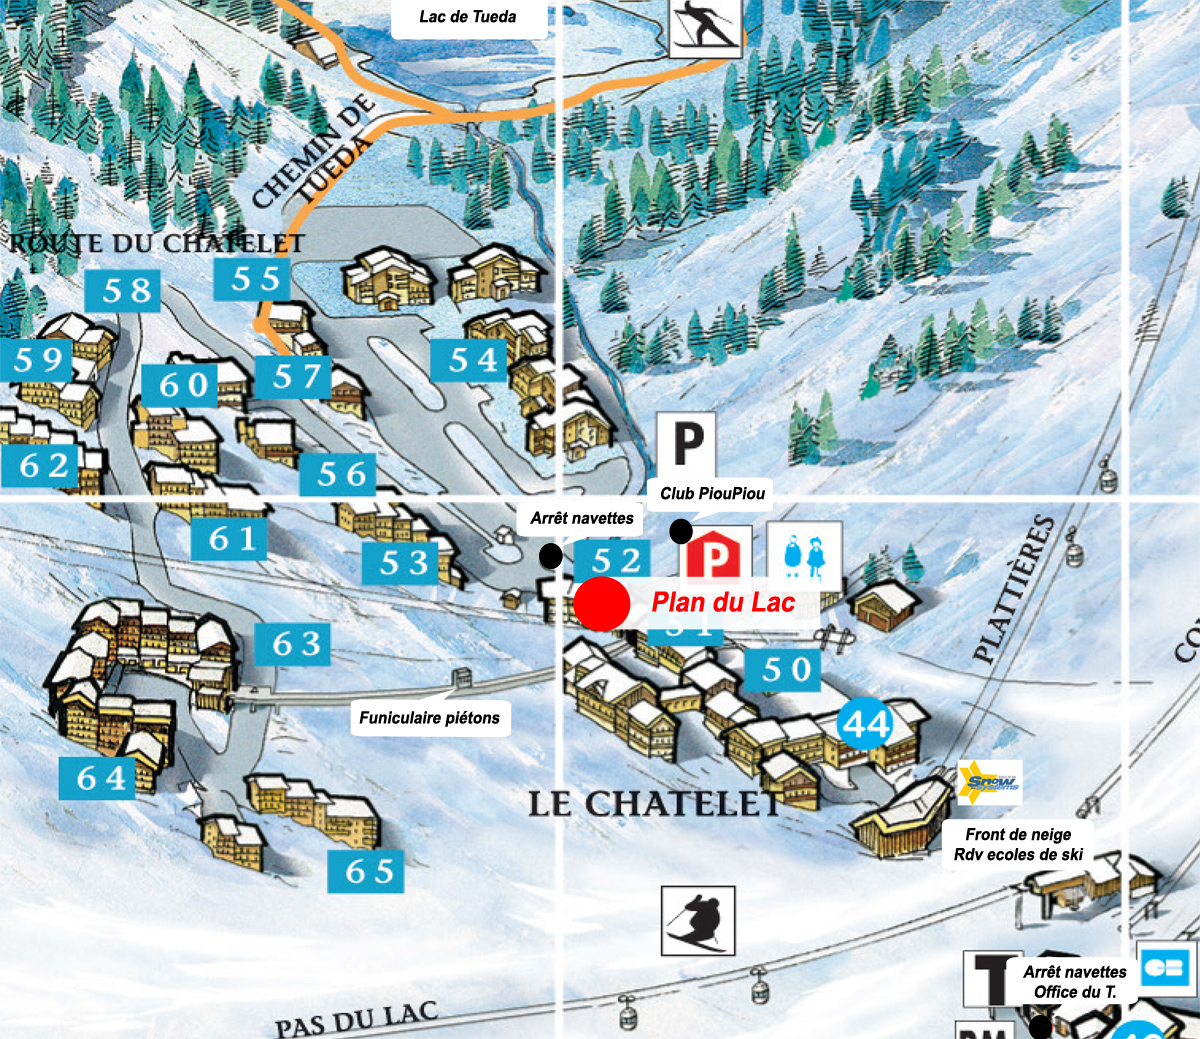 Plan du lac m ribel mottaret for Les plans de lowe